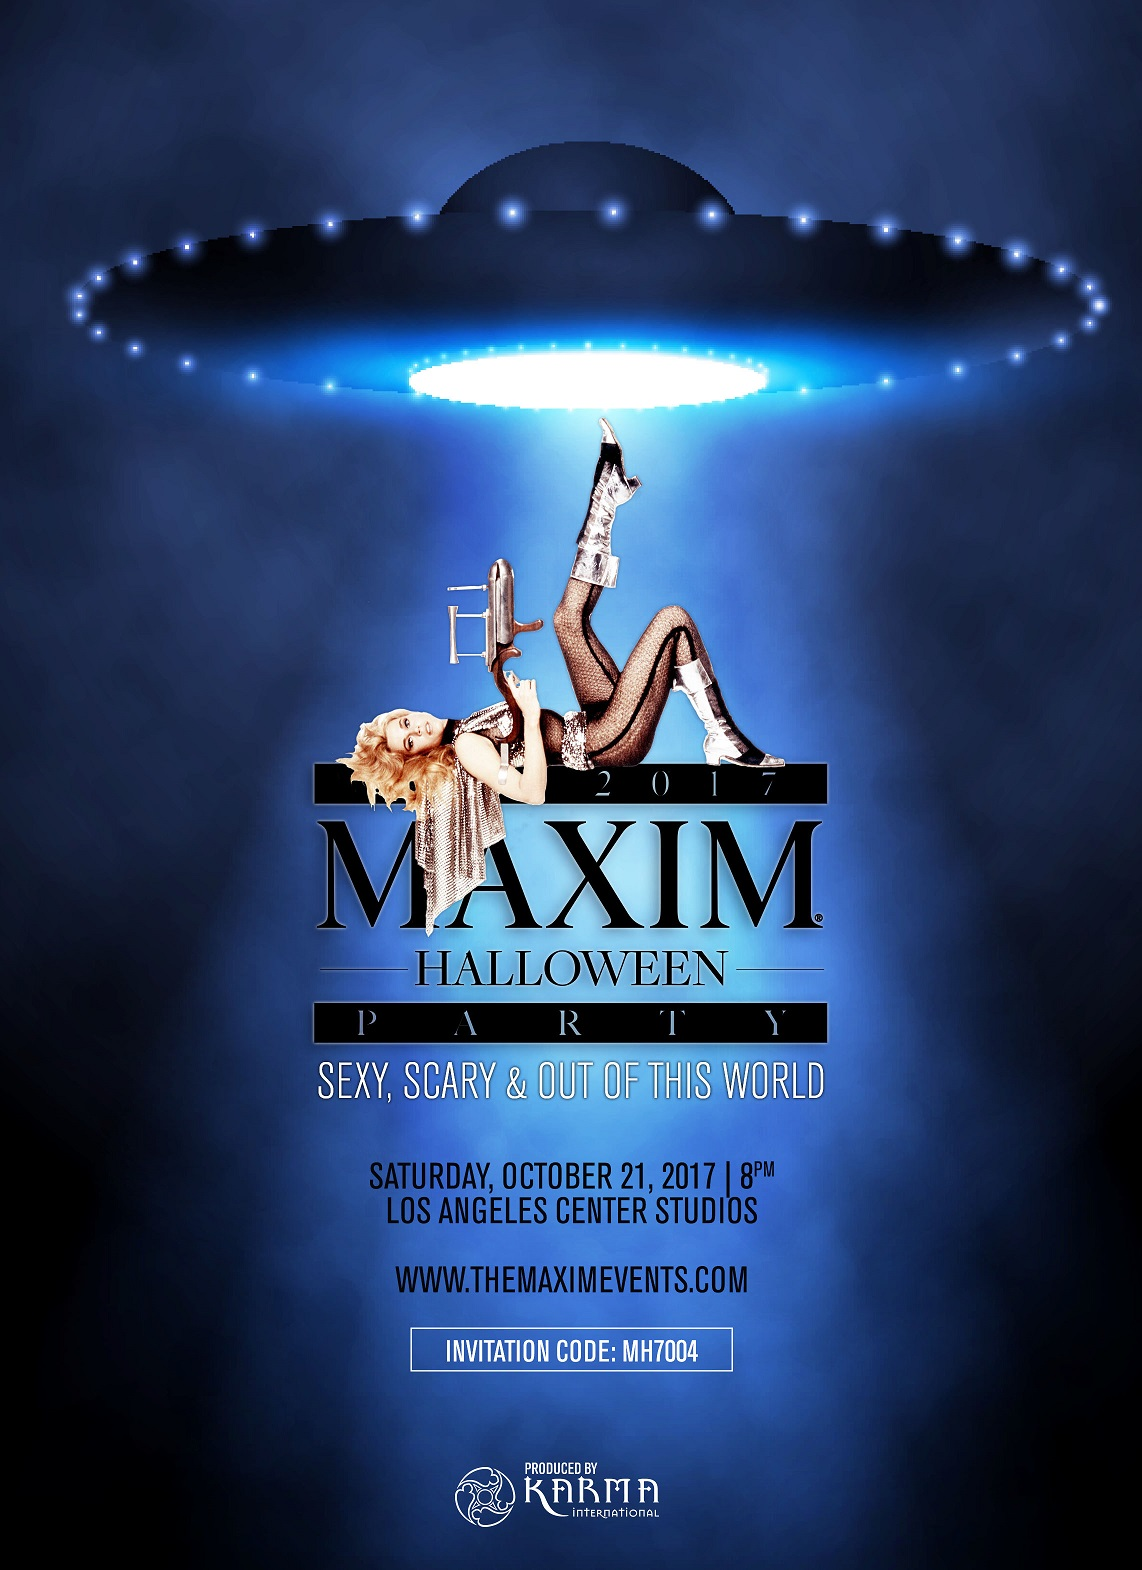 2017 Maxim Halloween Party Invitation Code: MH7004 VIP Exclusives is your Official VIP Host. For personal assistance with Tickets, Tables and VIP Services, call 1-877-MAXIM-02